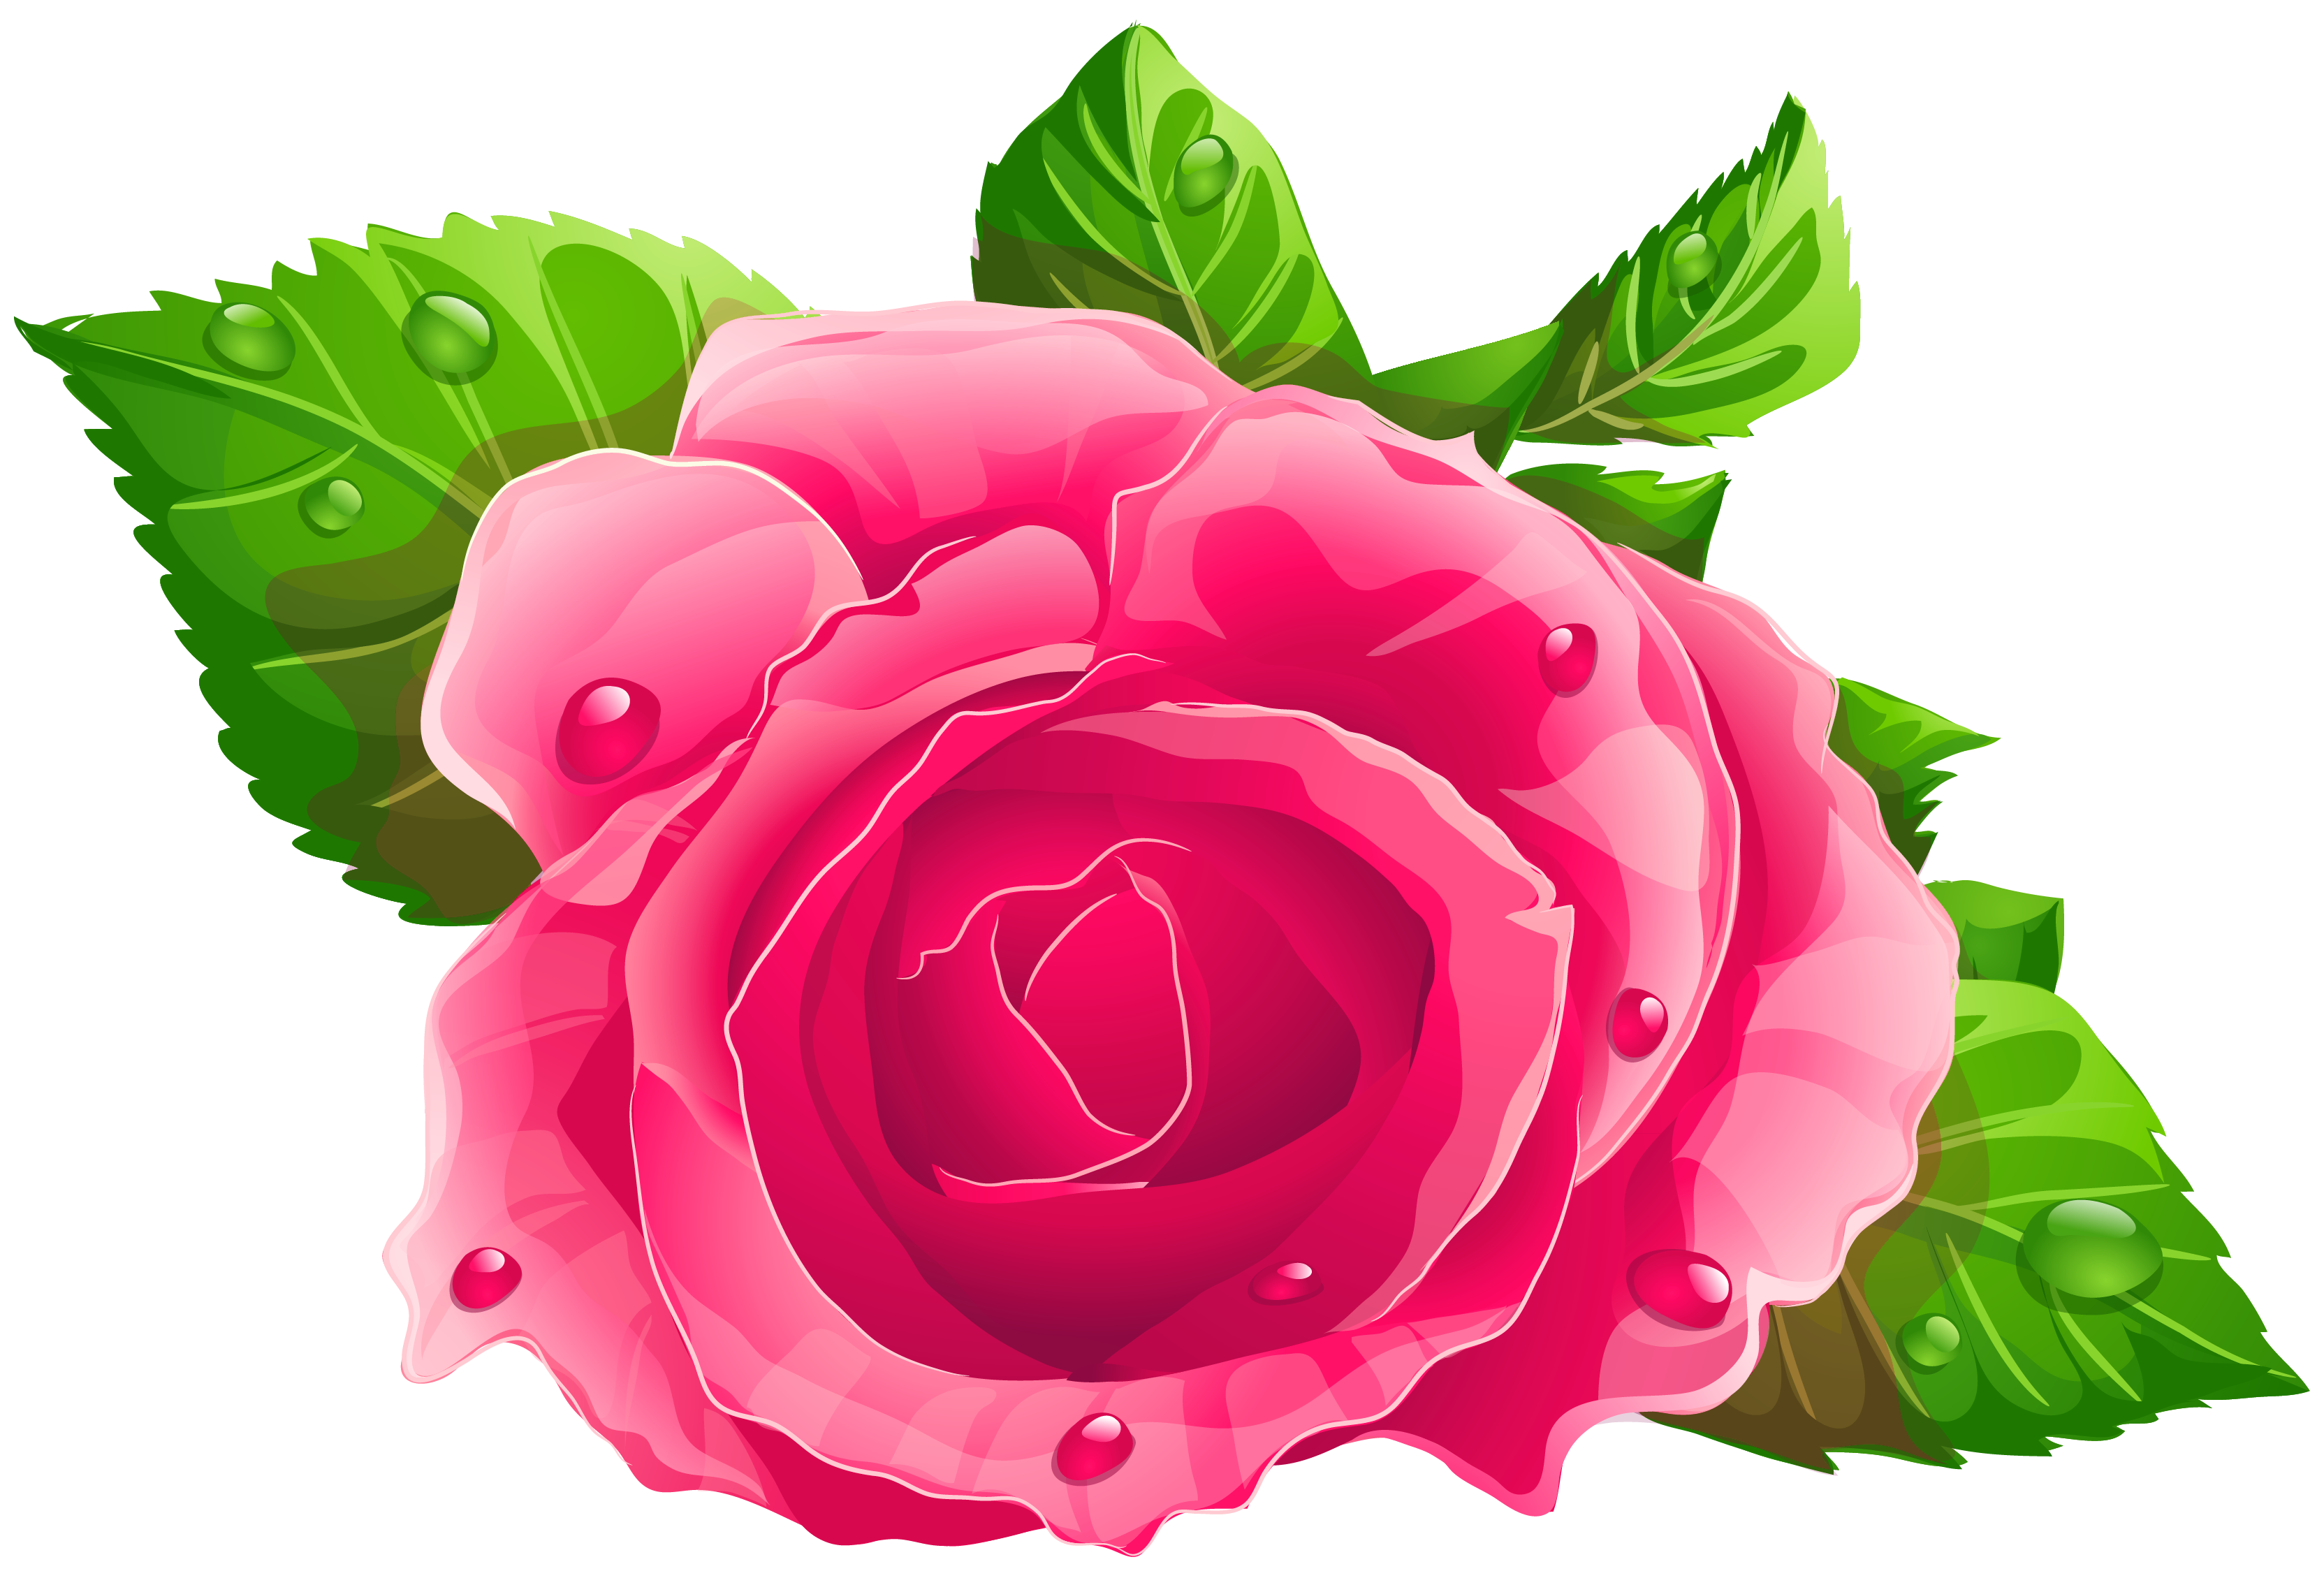 hoontoidly single pink rose clip art images clip art roses pictures clip art roses black and white